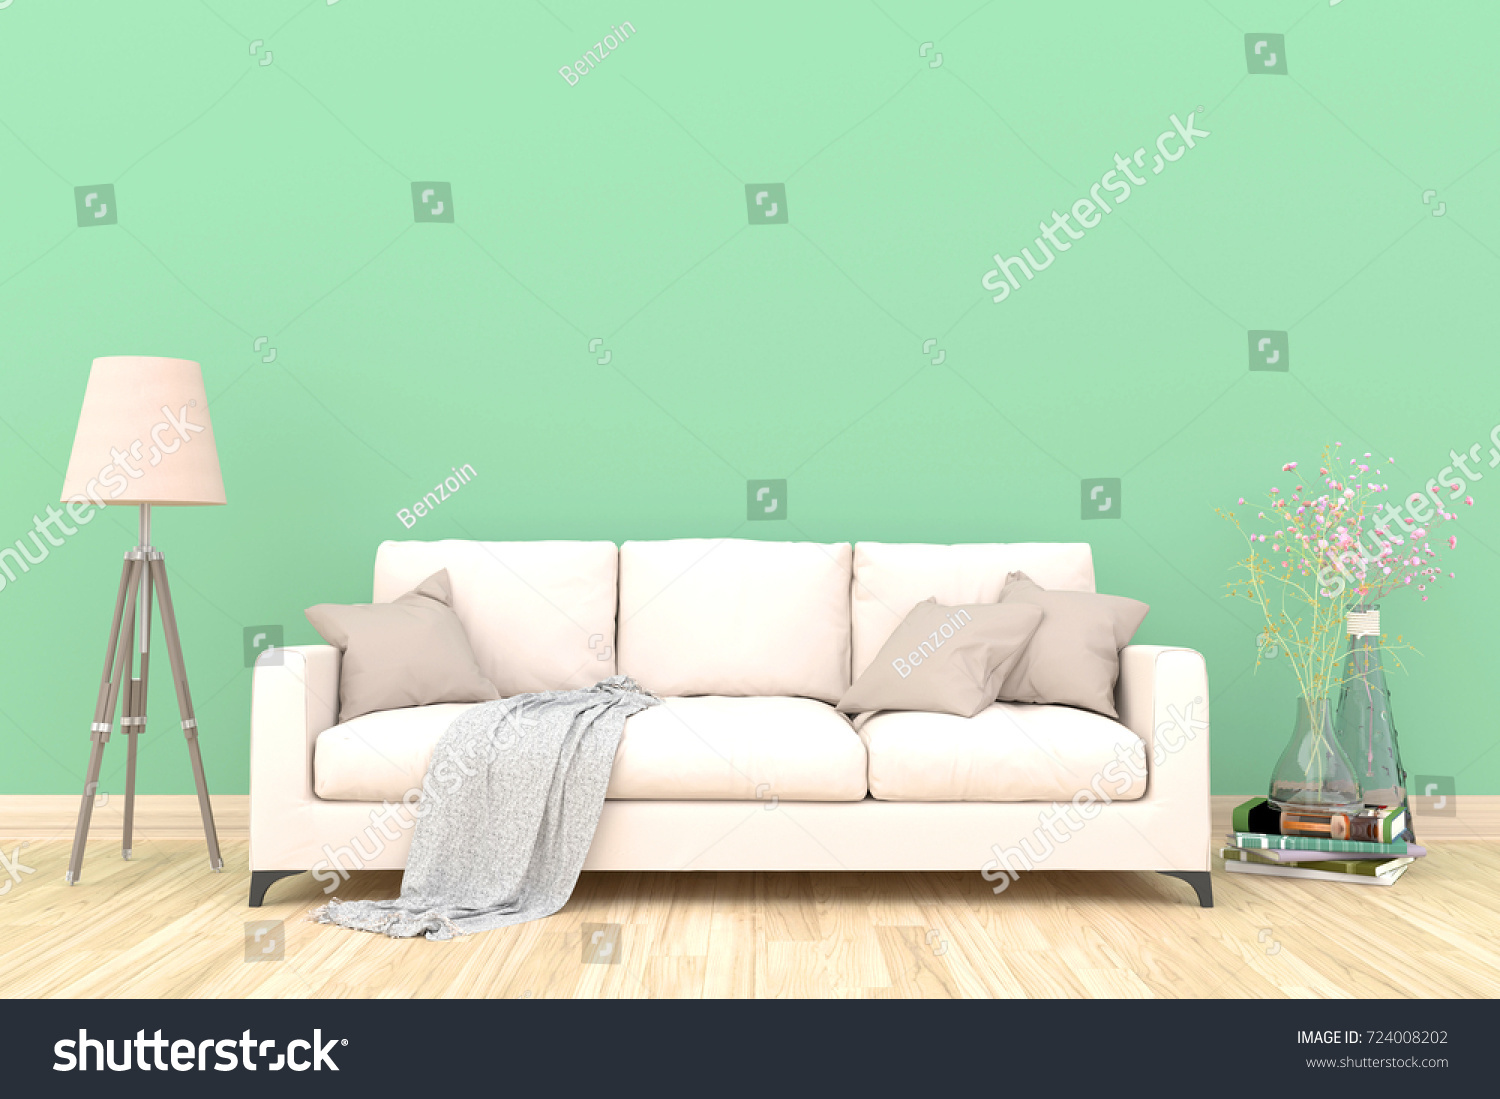 Minimal Green Living Room Interior With White Fabric Sofa, Lamp, Cabinet  And Plants On Part 77